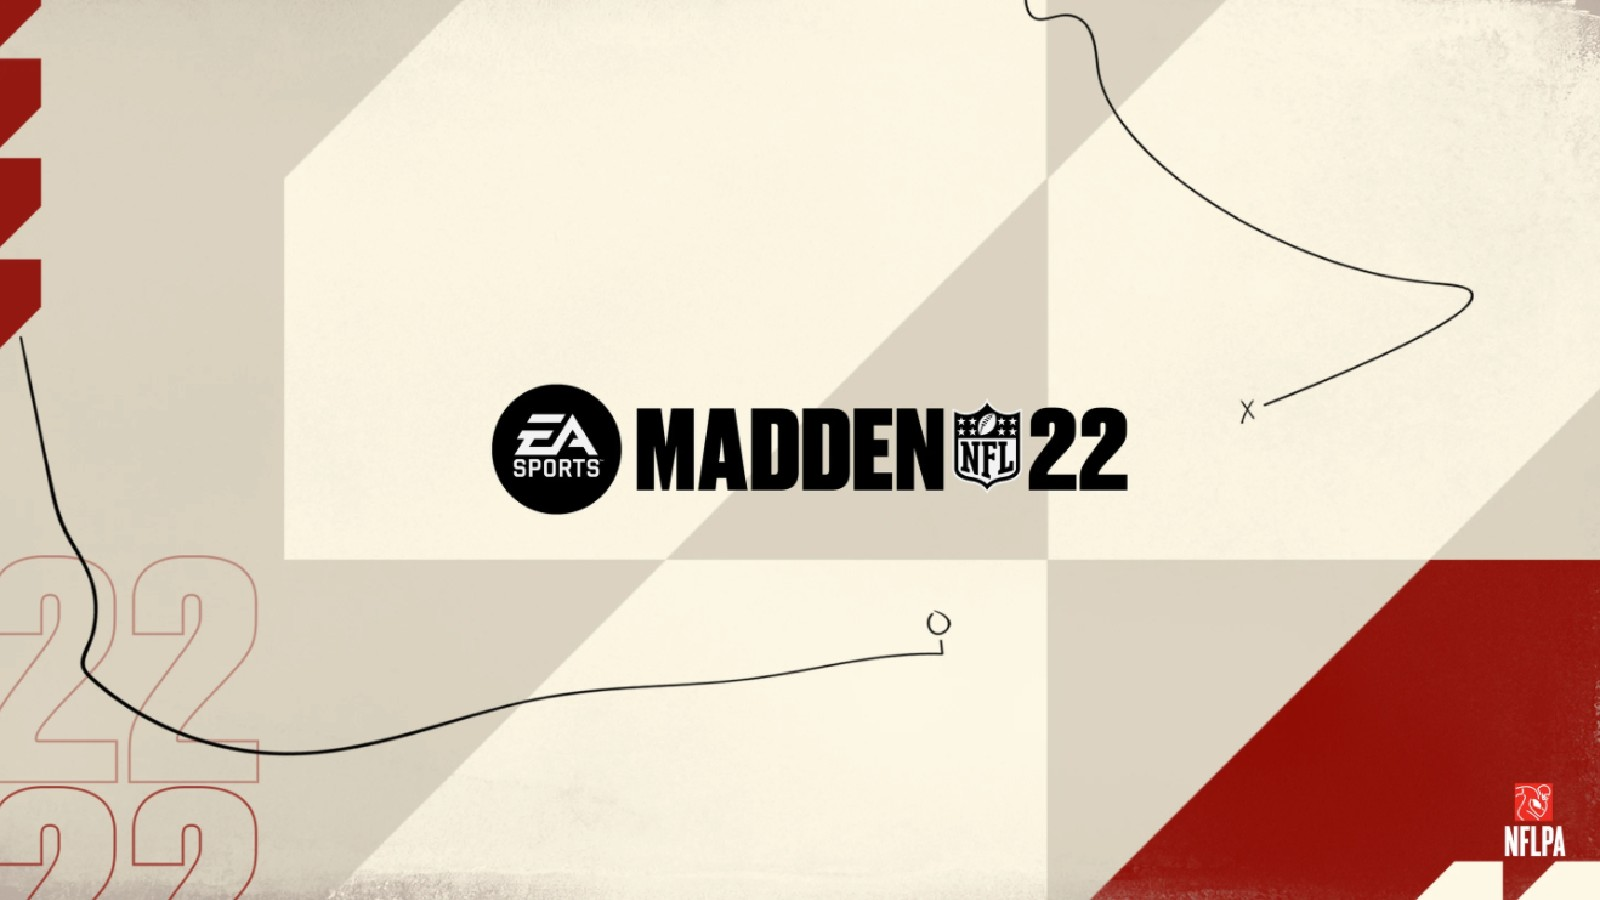 Madden NFL 22 will touchdown on Google Stadia on the same day as other platforms